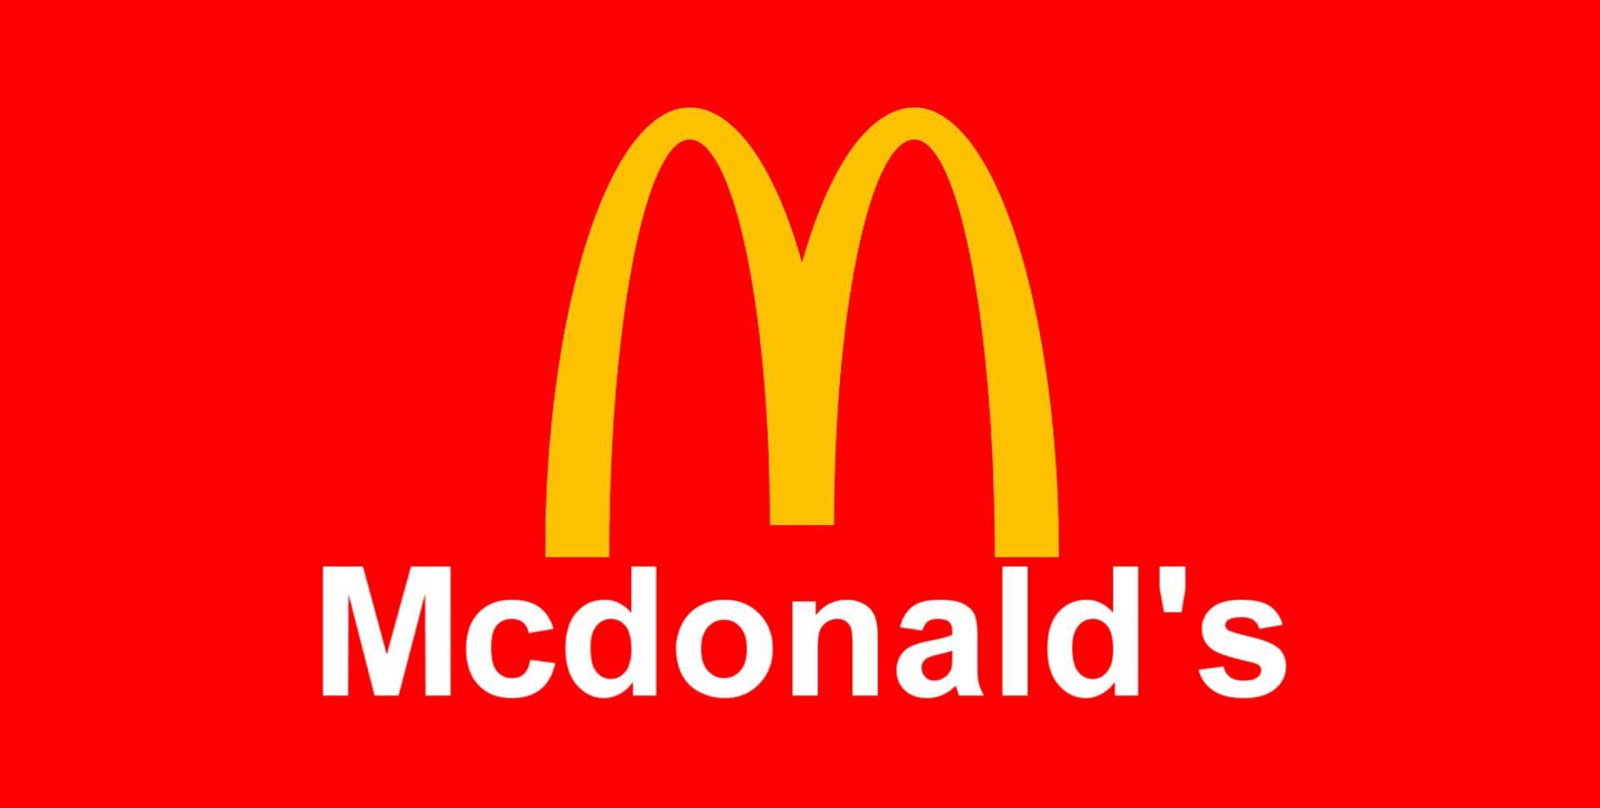 McDonalds logo and symbol, meaning, history, PNG